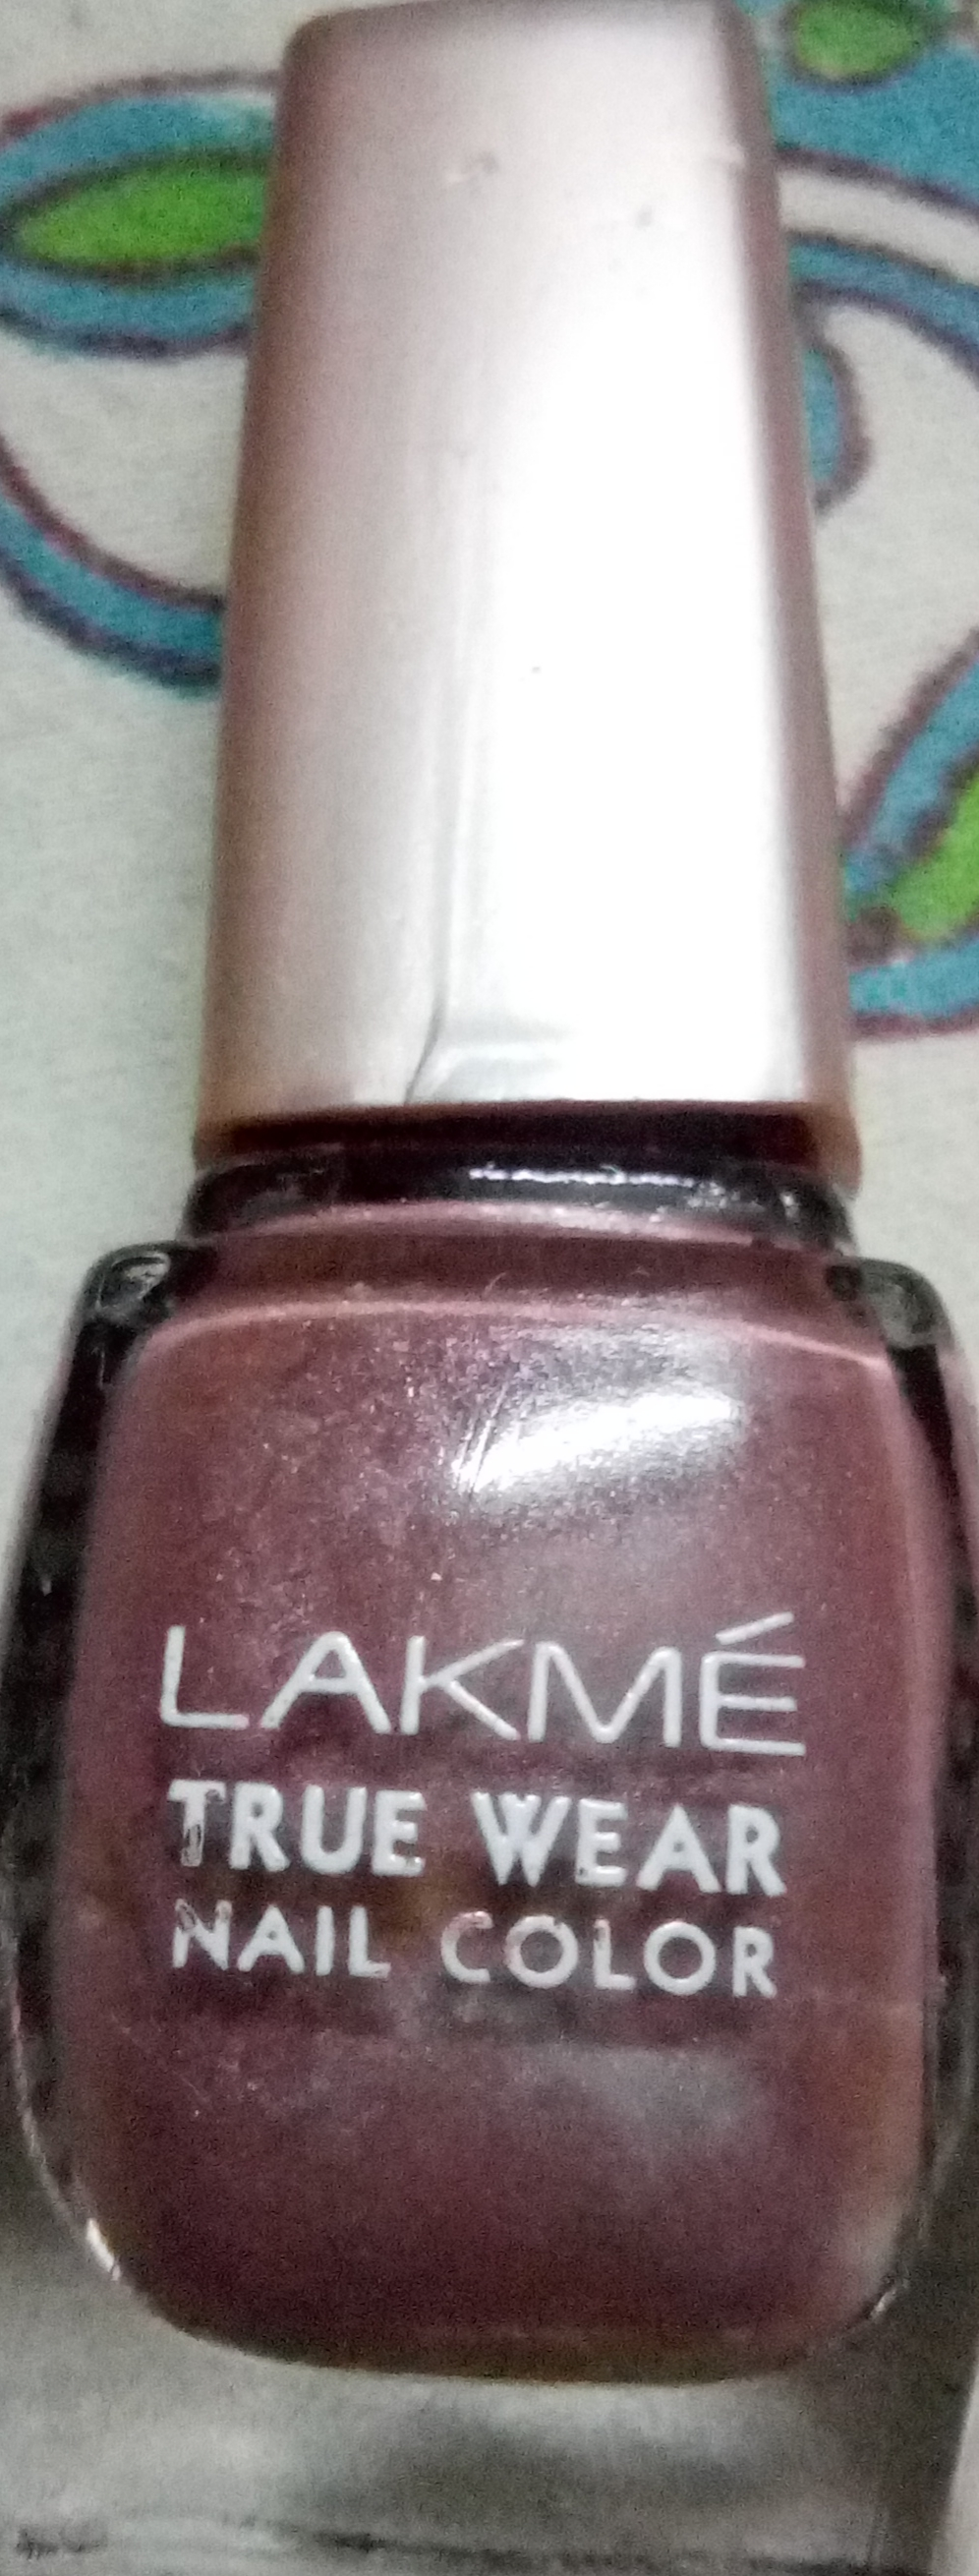 Lakme True Wear Nail Color -Long lasting-By vaishali_0111